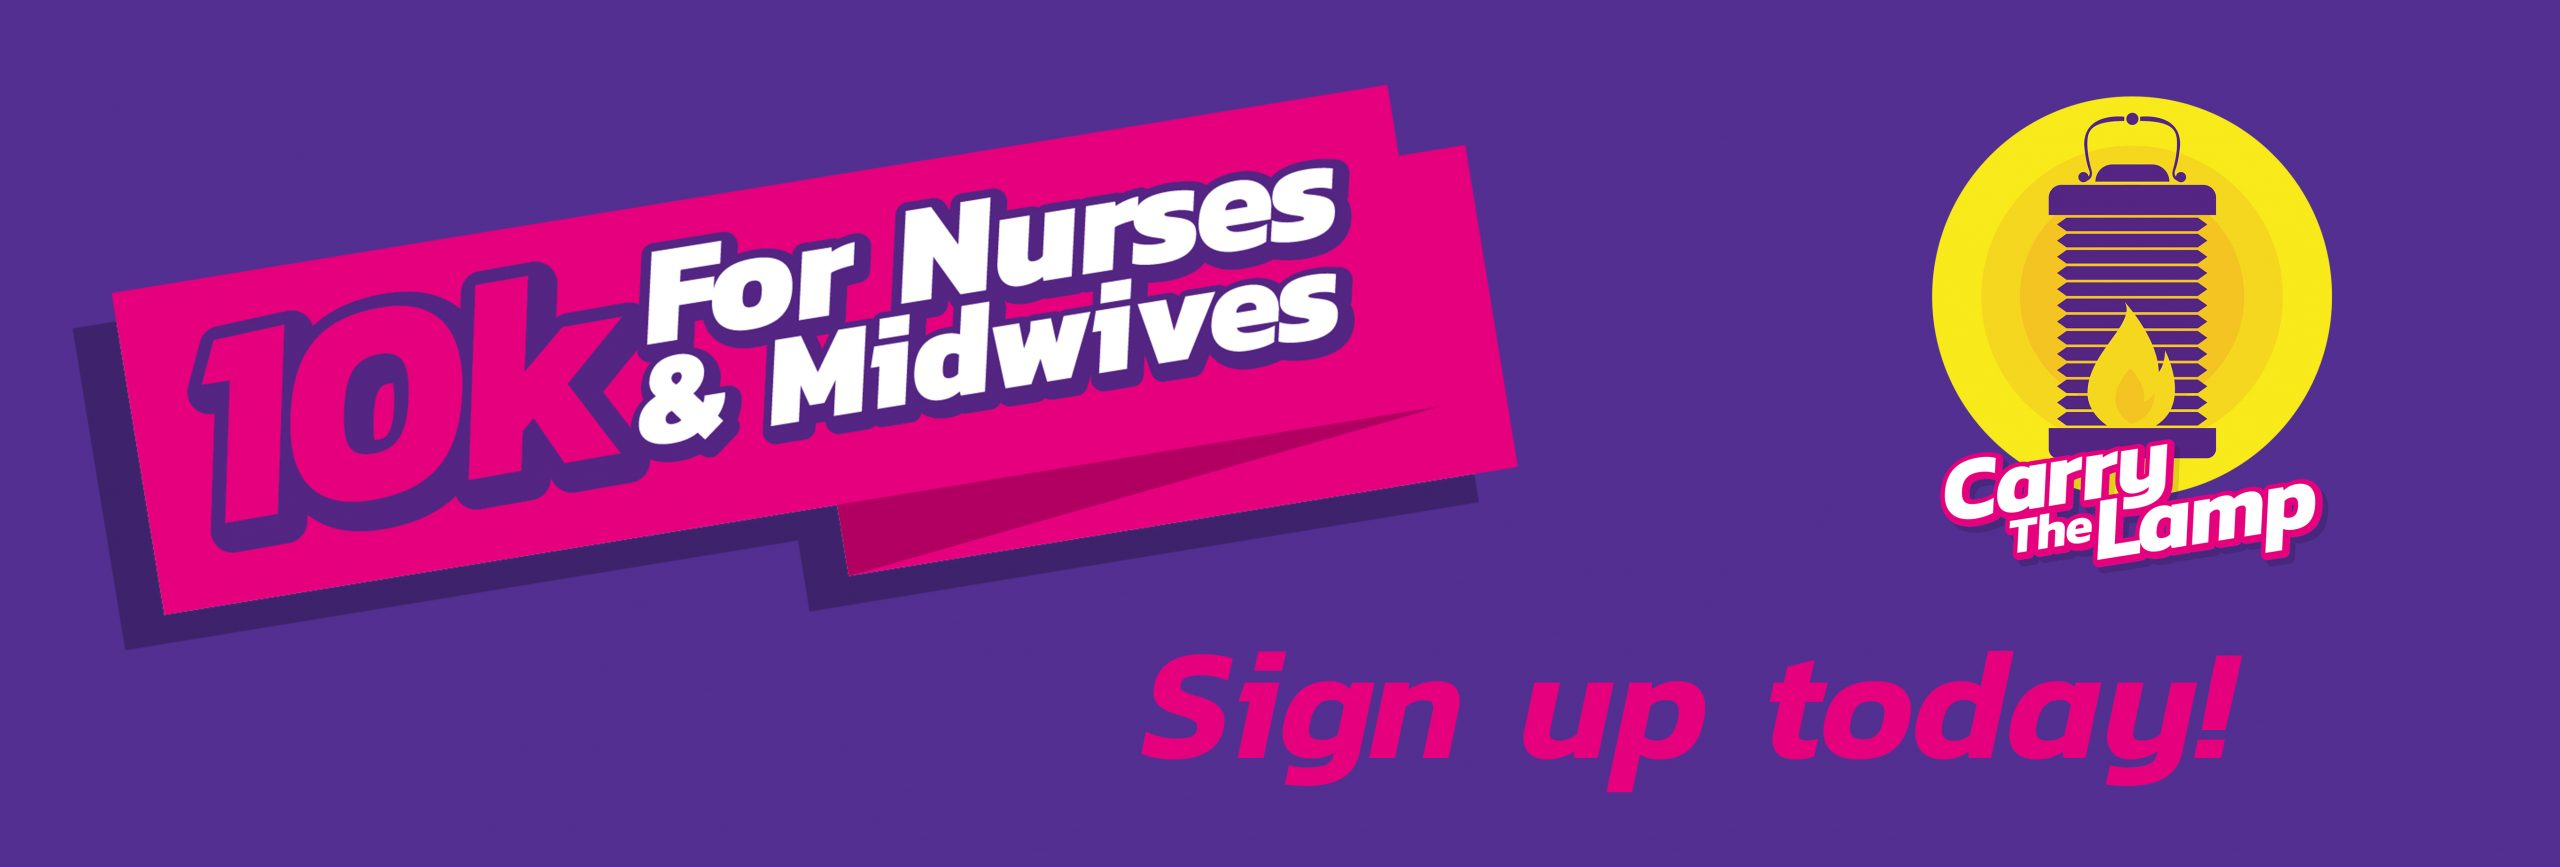 10k For Nurses & Midwives